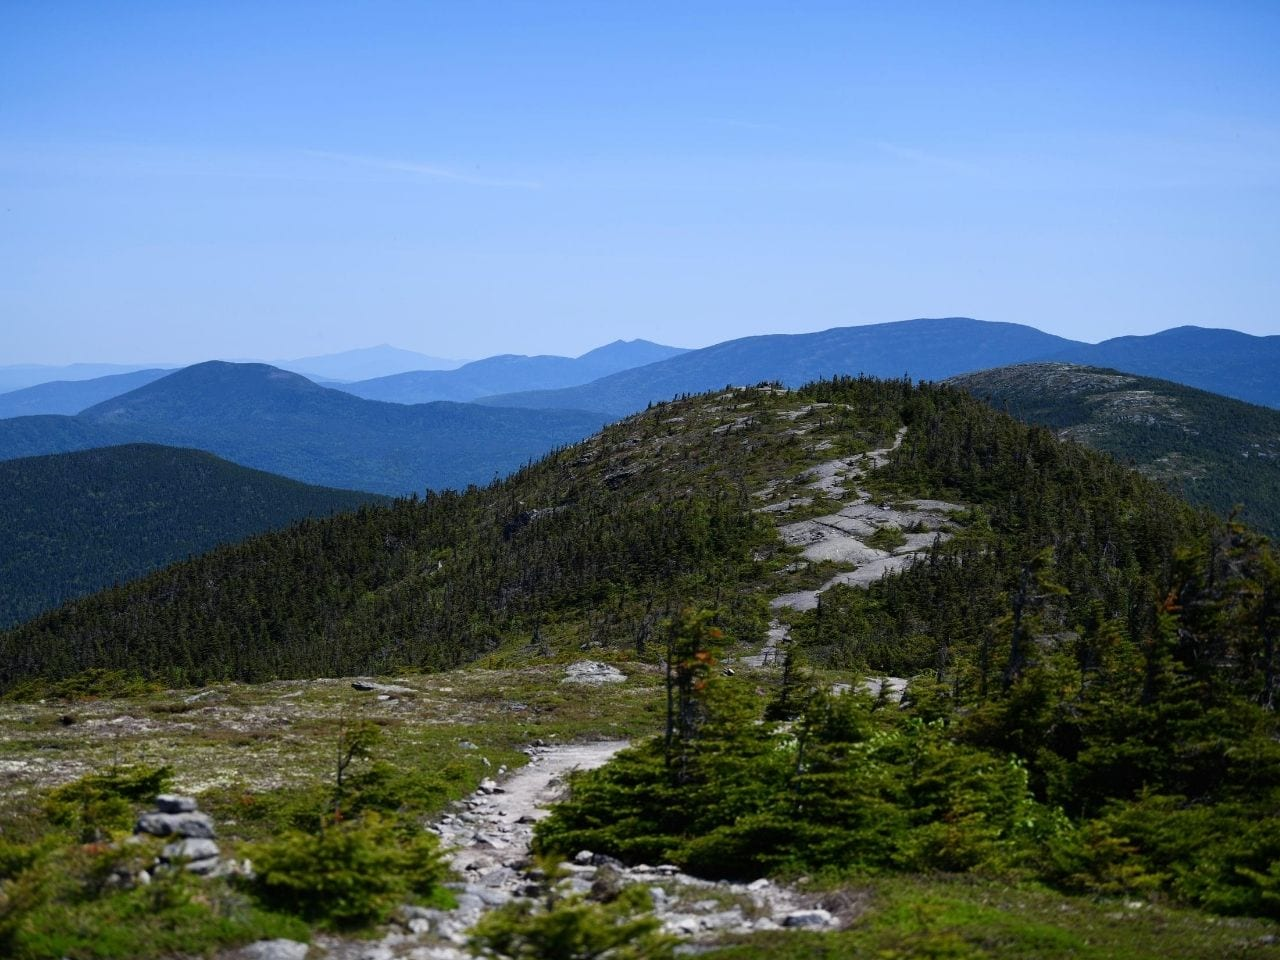 A view of mountains and green hills on the Appalachian Trail.